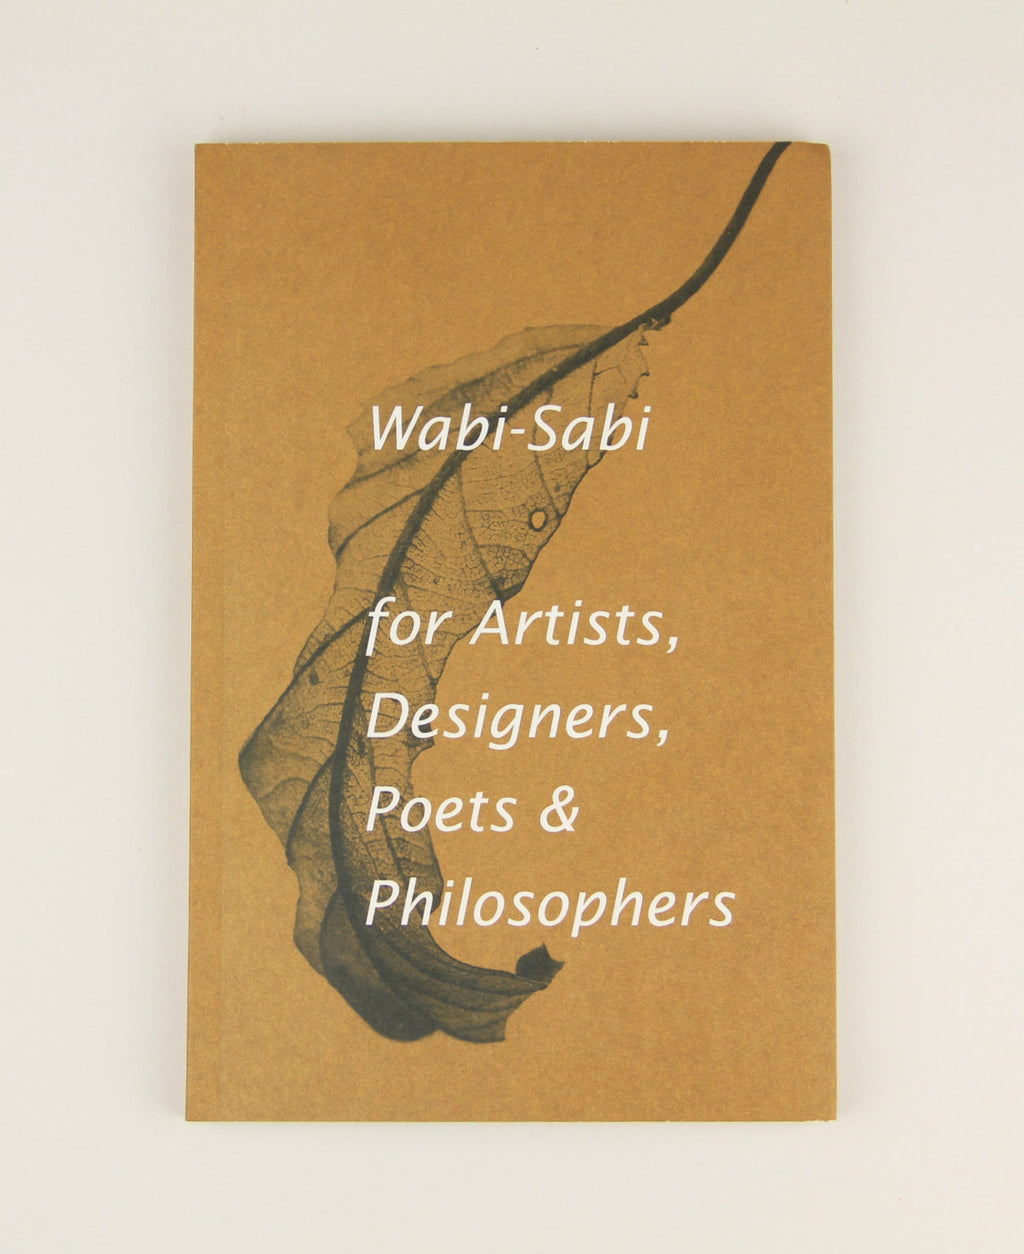 Wabi-Sabi: For Artists, Designers, Poets and Philosophers